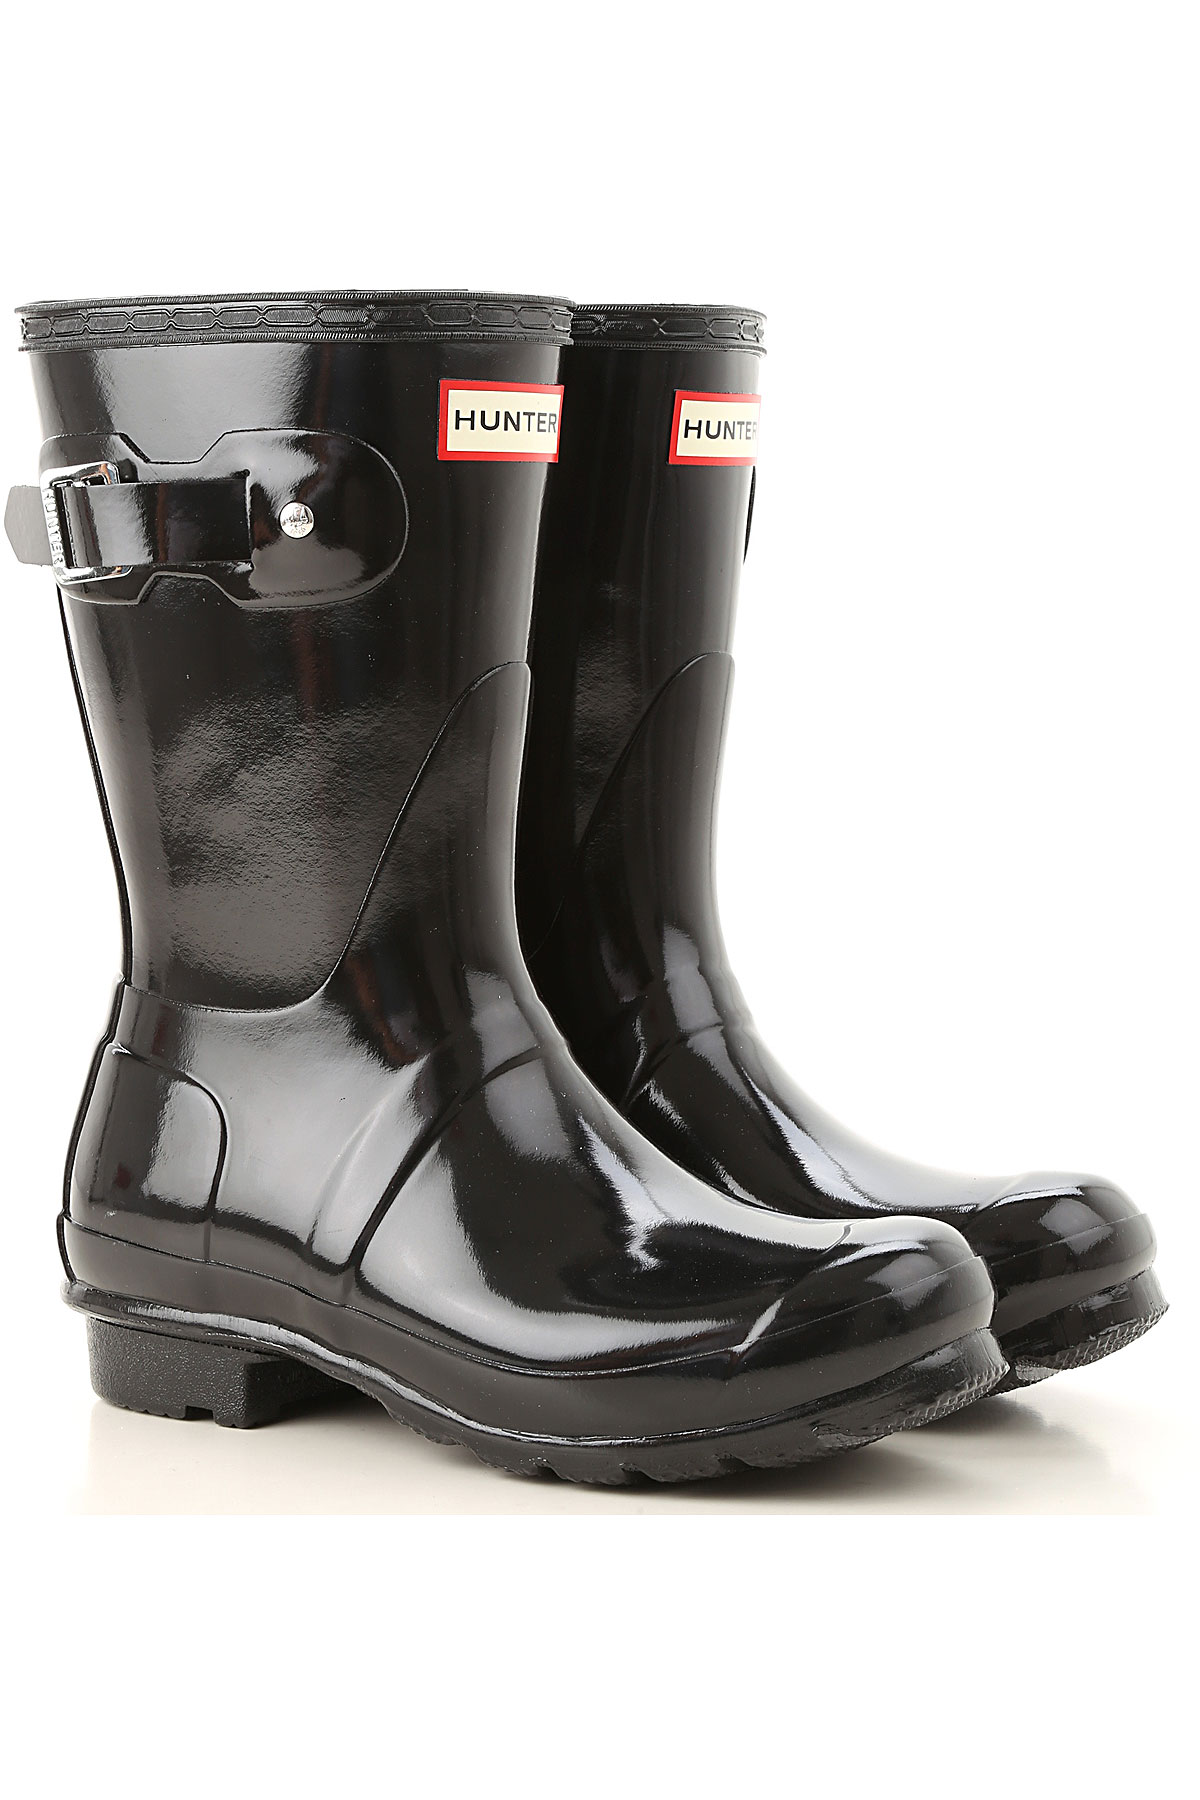 Image of Hunter Boots for Women, Booties, Black, Rubber, 2017, 7 8 9